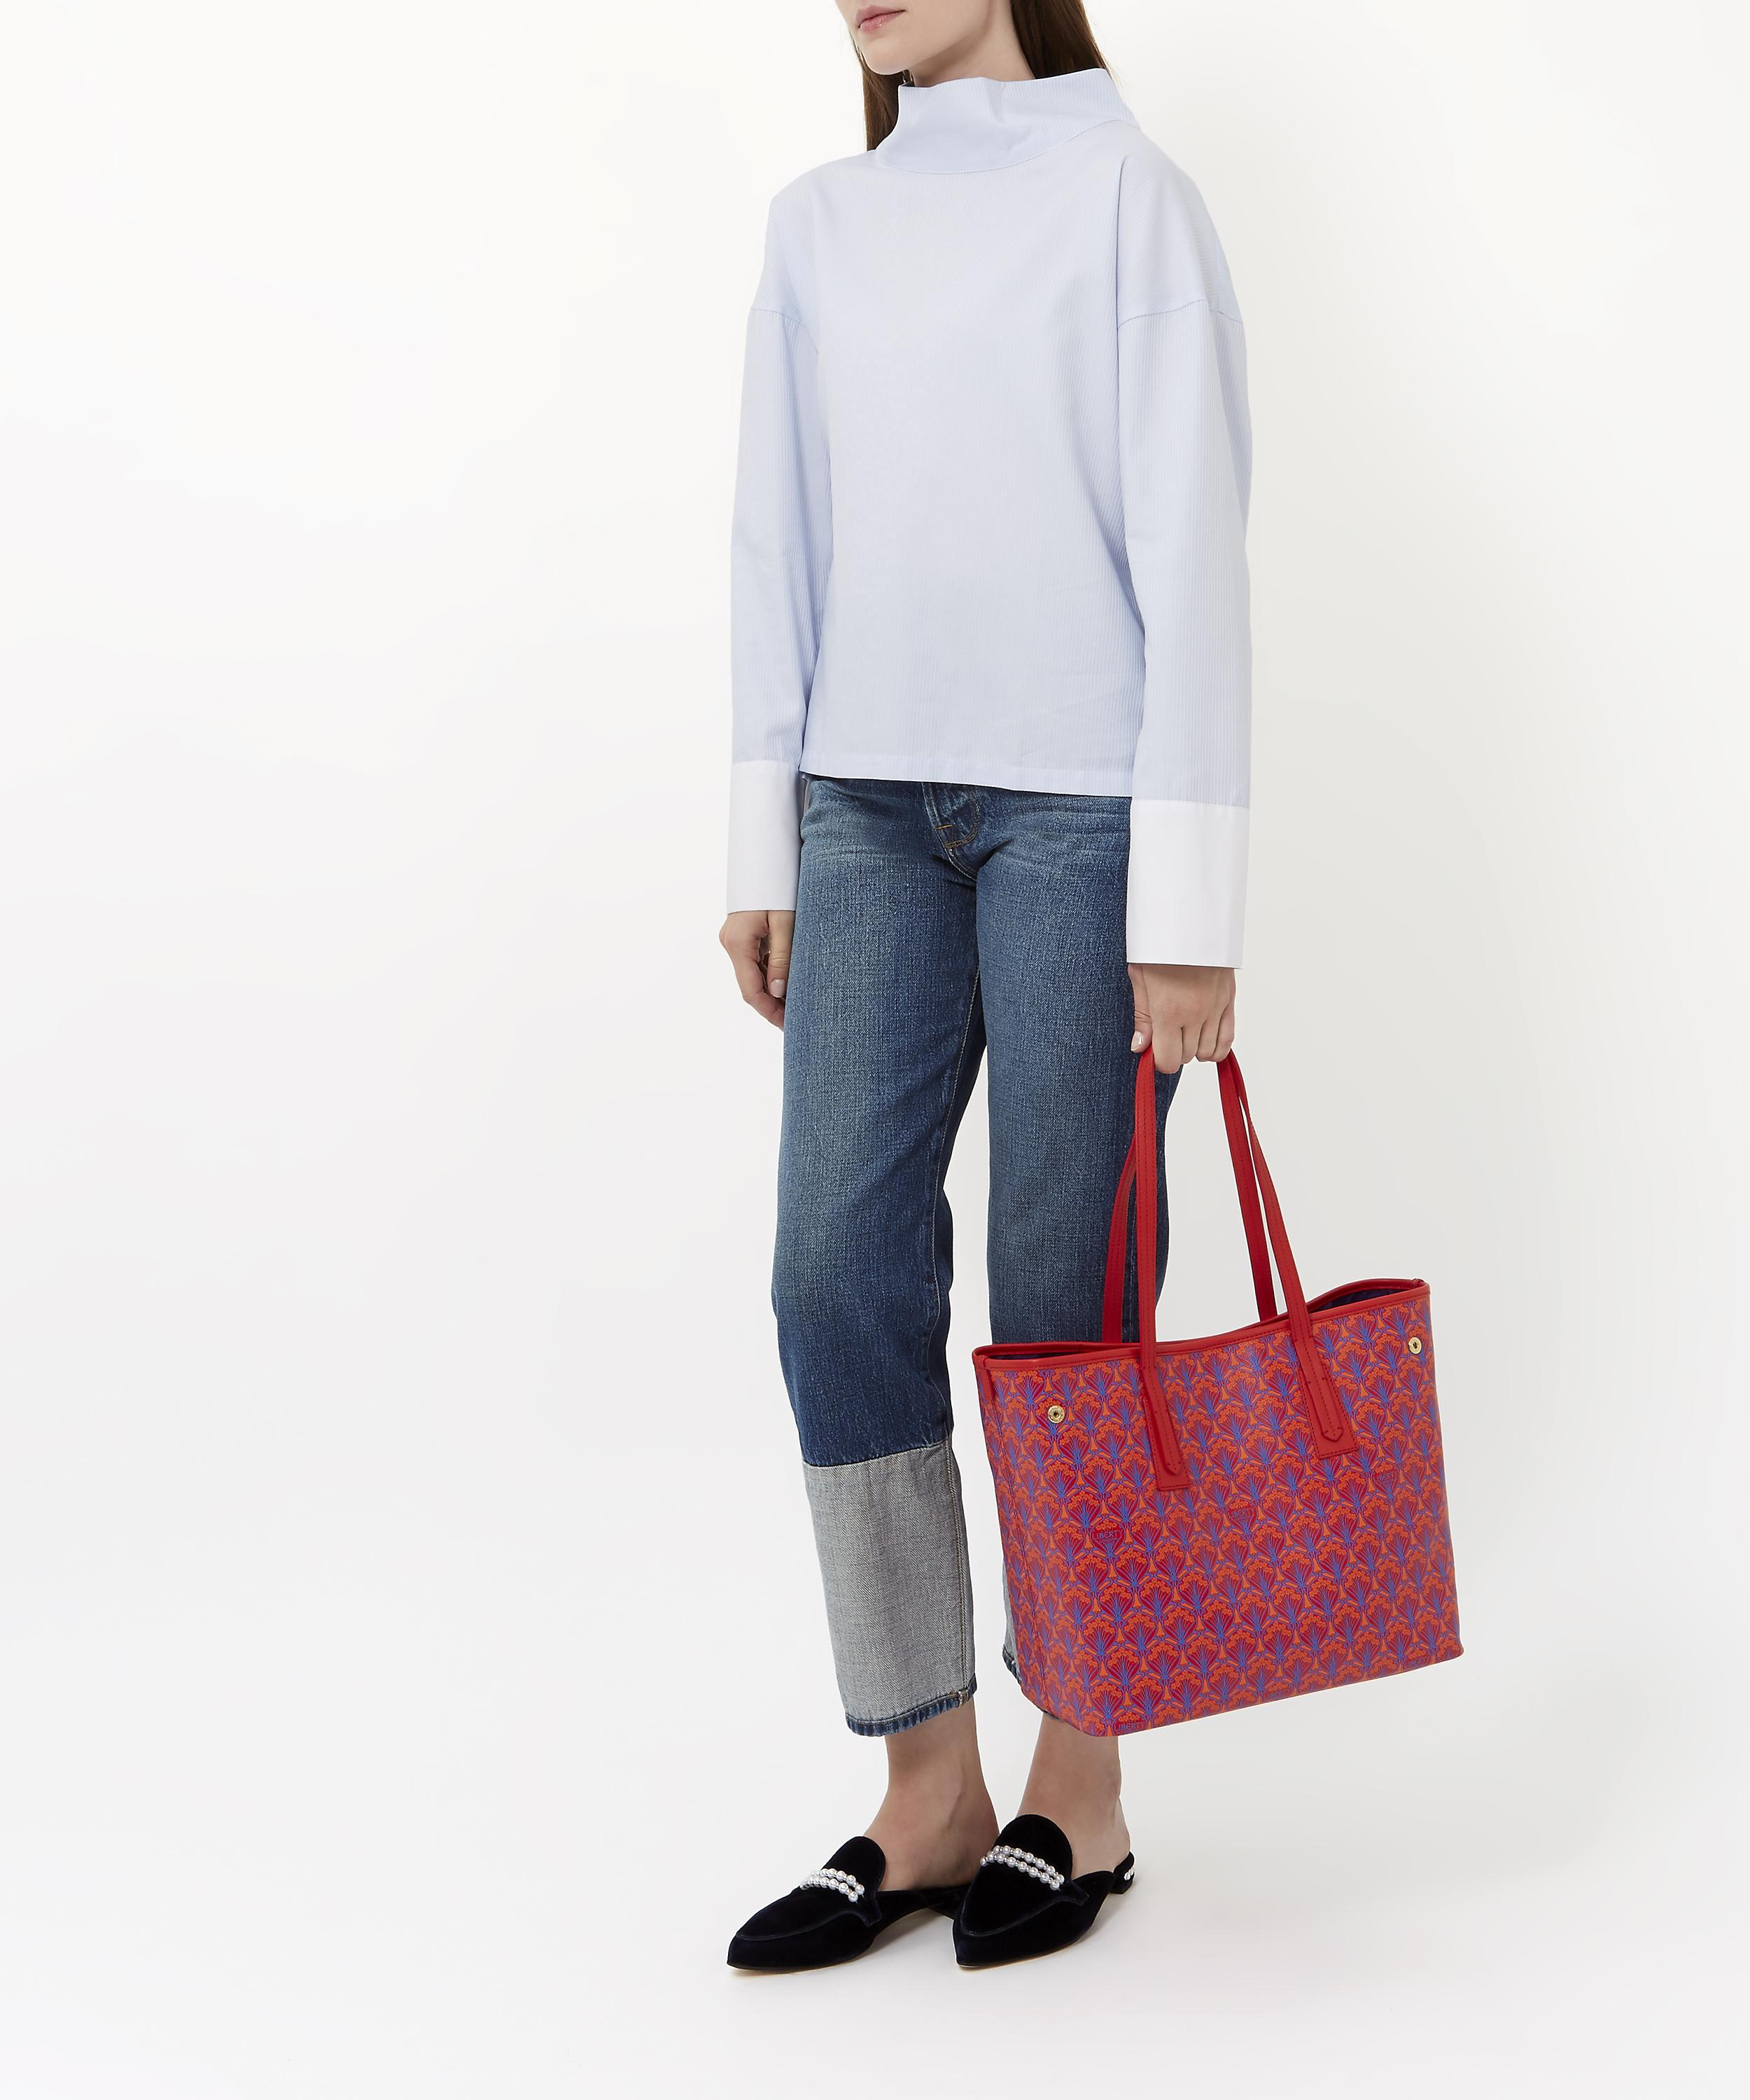 8f0f4bce49809 Lyst - Liberty Little Marlborough Tote Bag In Iphis Canvas in Red - Save 38%